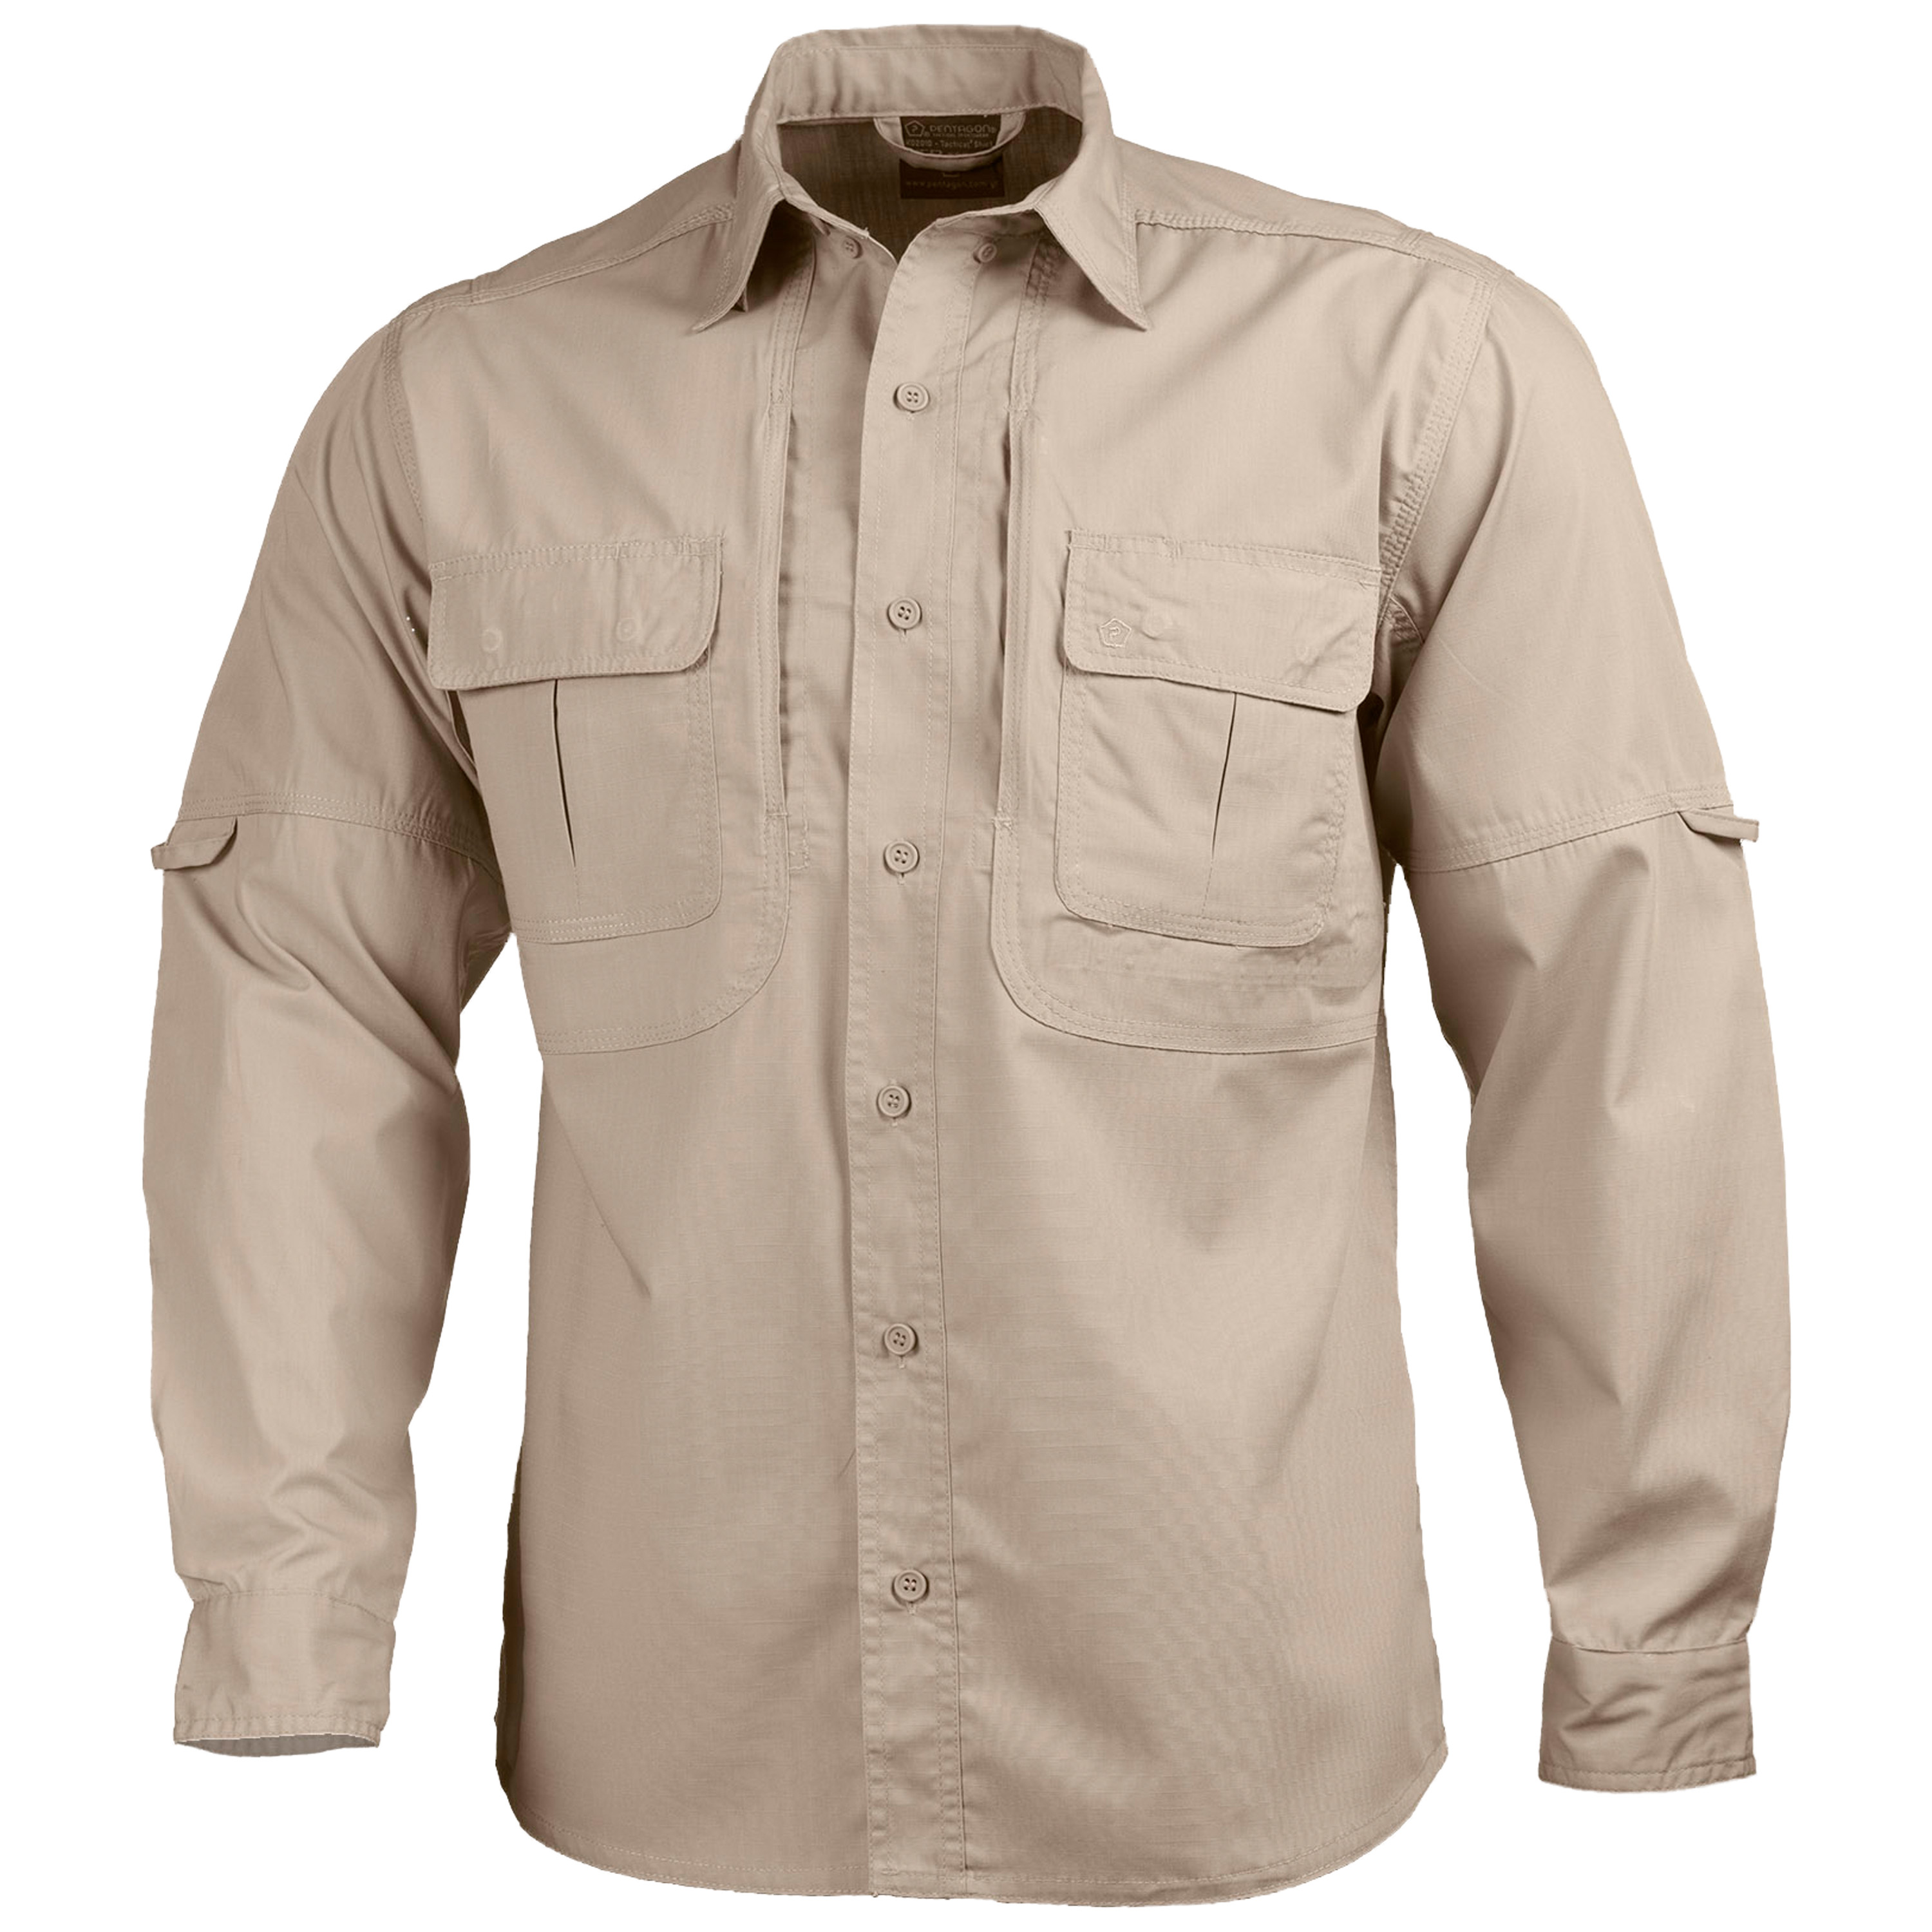 Pentagon Shirt Tactical 2 khaki